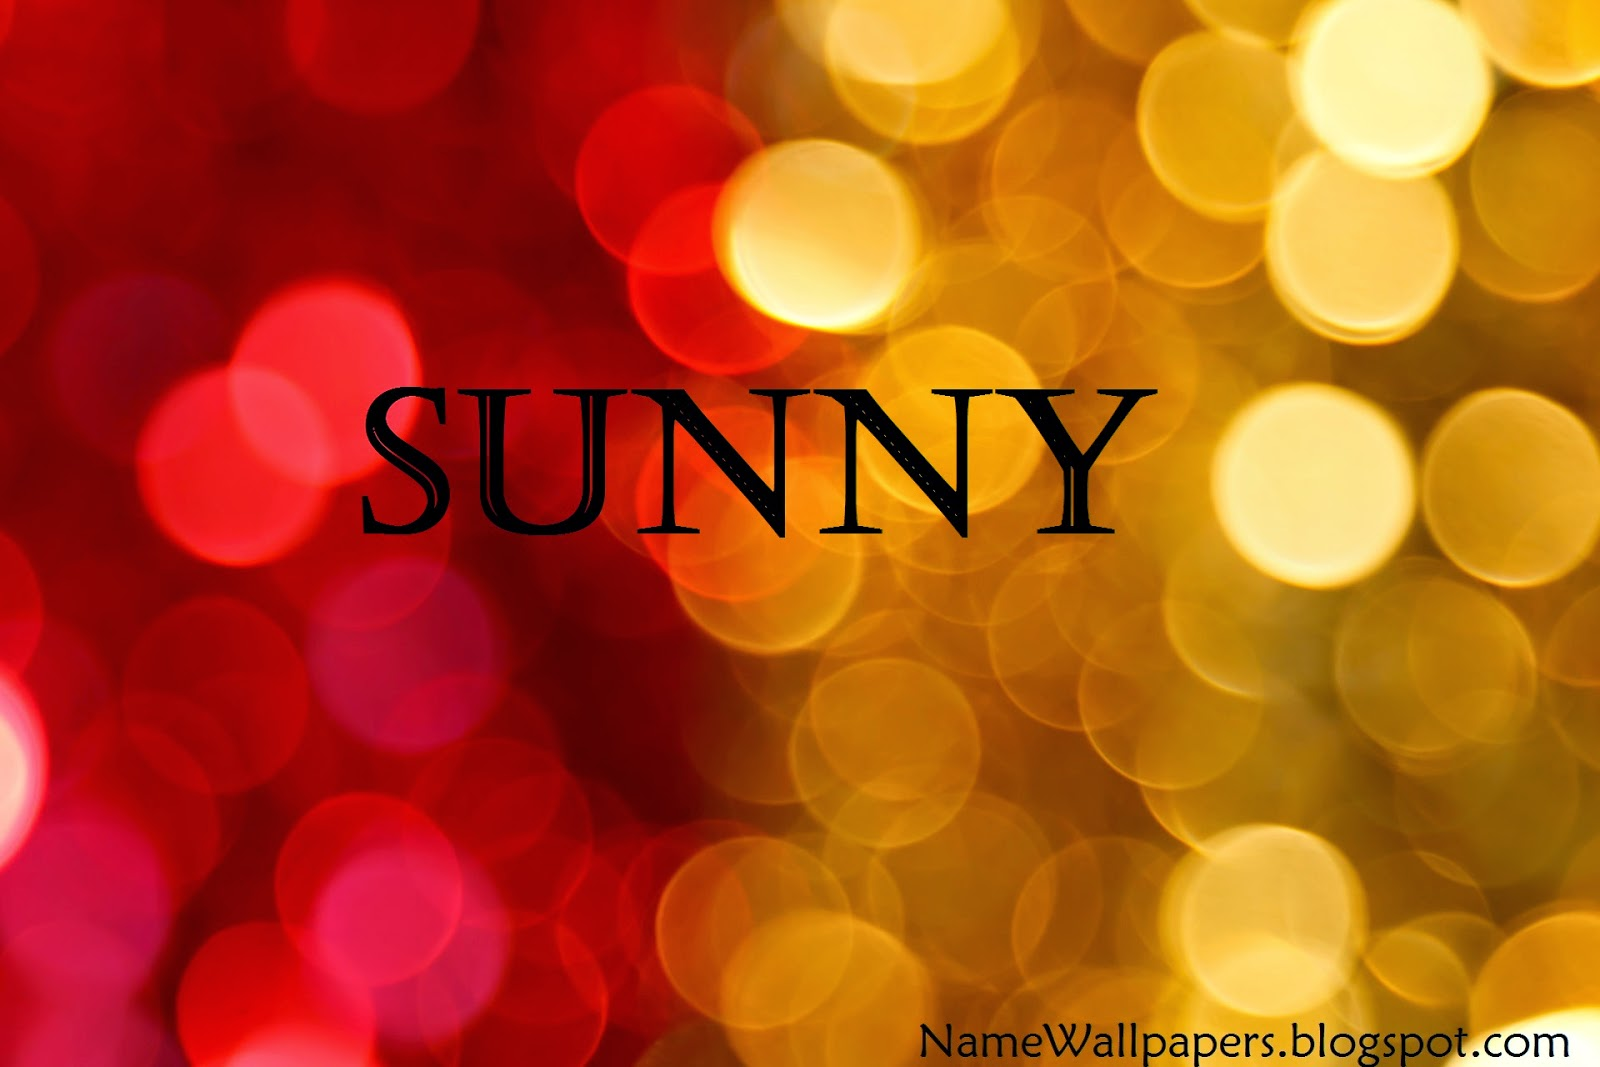 Sunny name love wallpapers